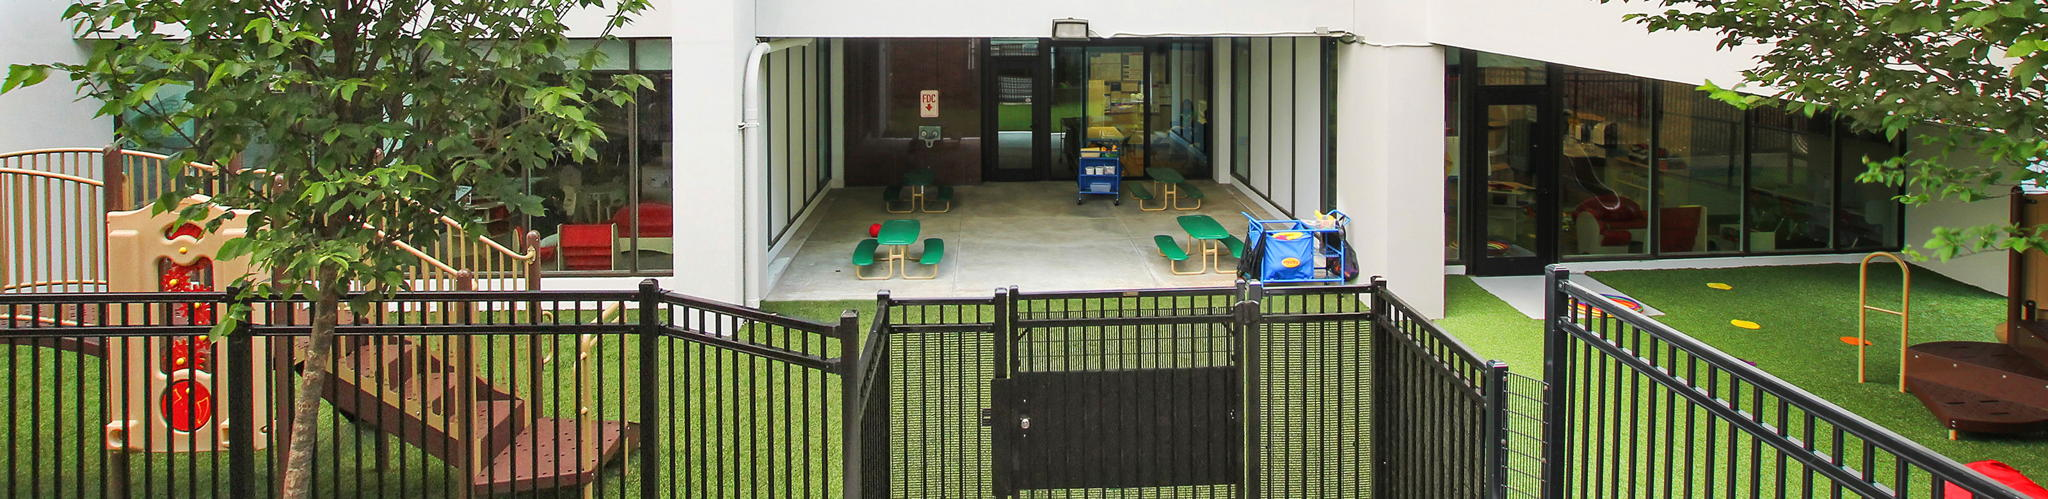 Children play area of the Primrose School of Buckhead